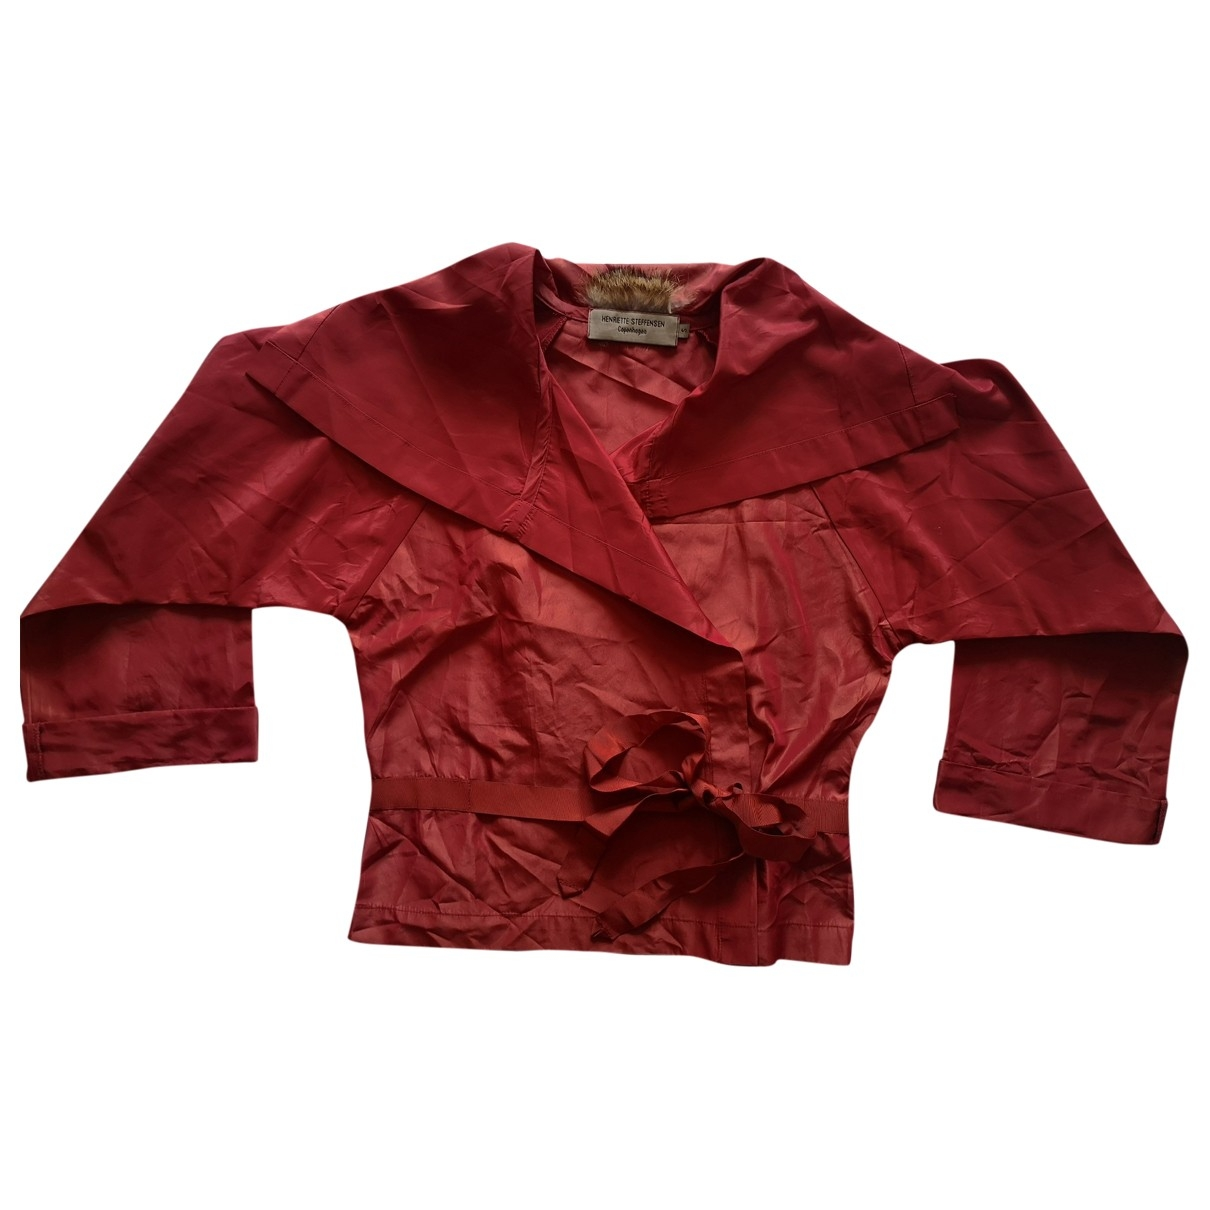 Non Signé / Unsigned \N Red jacket for Women S International